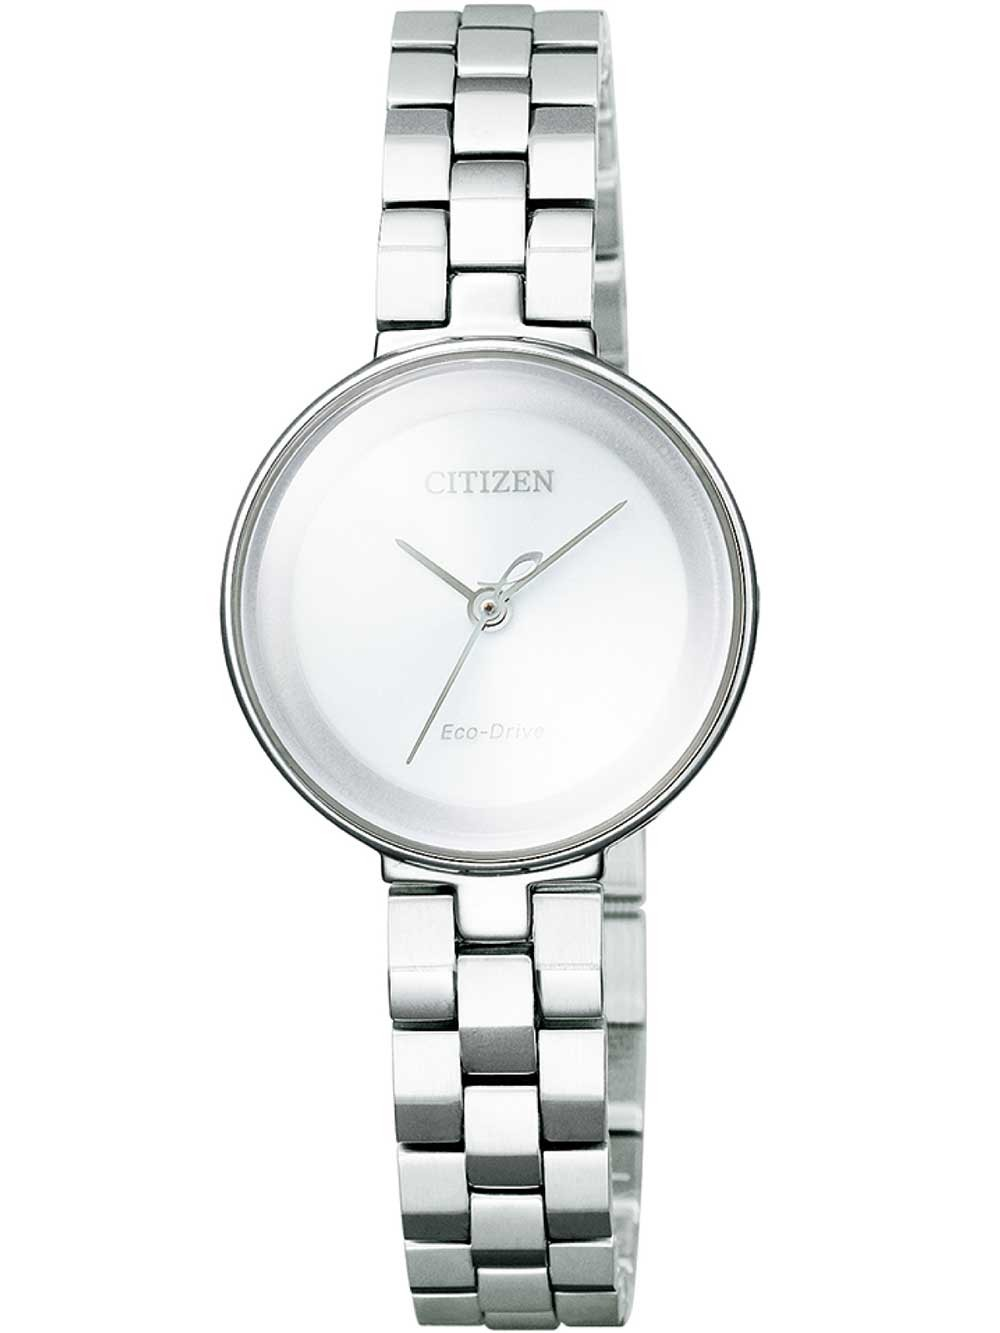 Ceas de dama Citizen EW-5500-57A Eco-Drive 25mm 5ATM